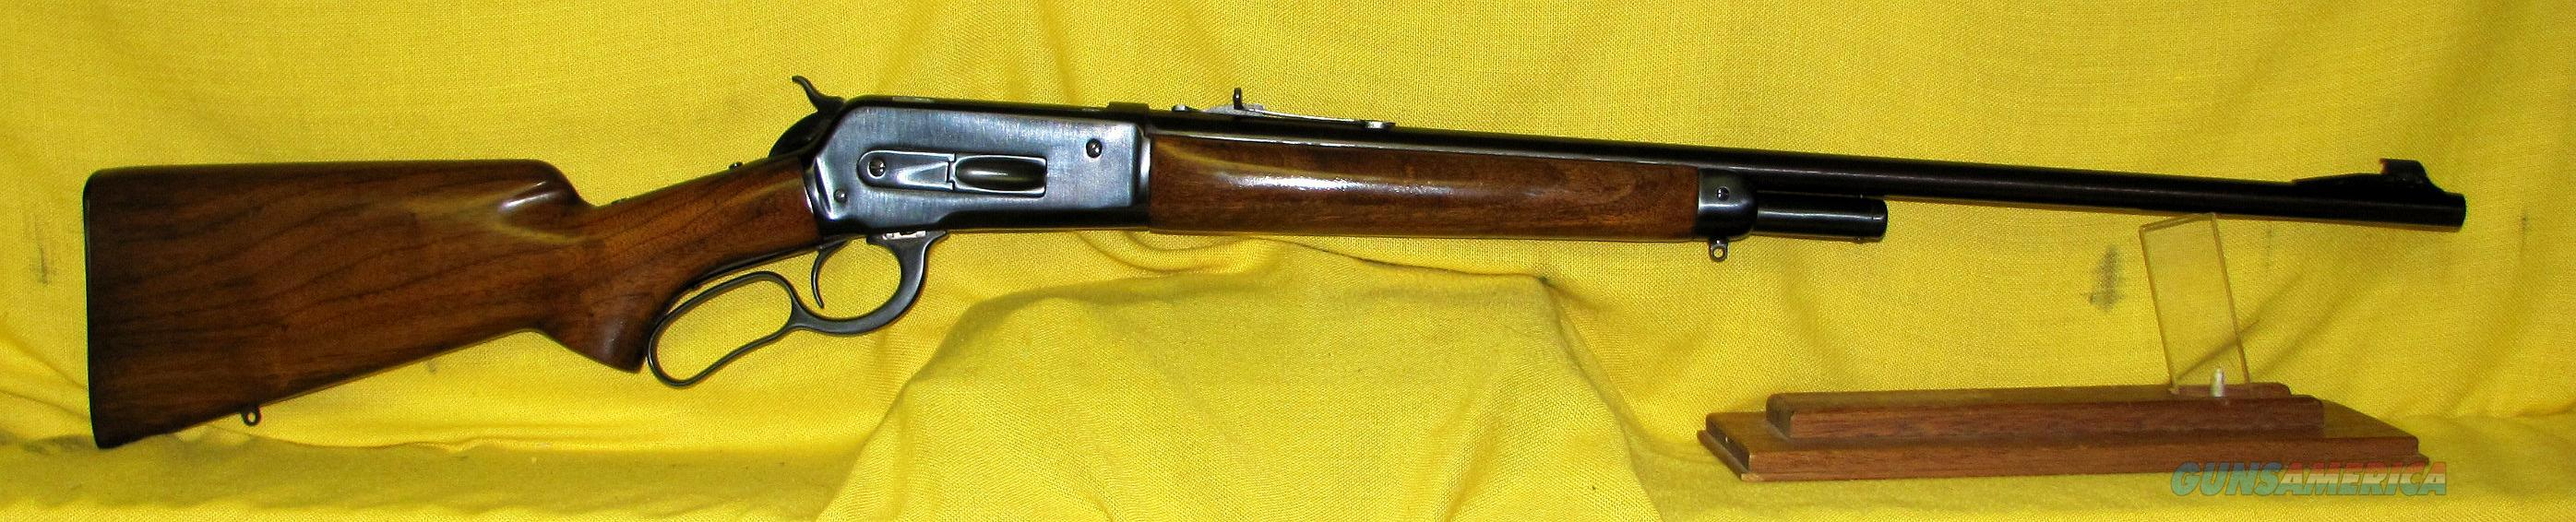 "WINCHESTER 71 .348WIN 24"" BARREL, LONG TANG  Guns > Rifles > Winchester Rifles - Modern Lever > Other Lever > Pre-64"